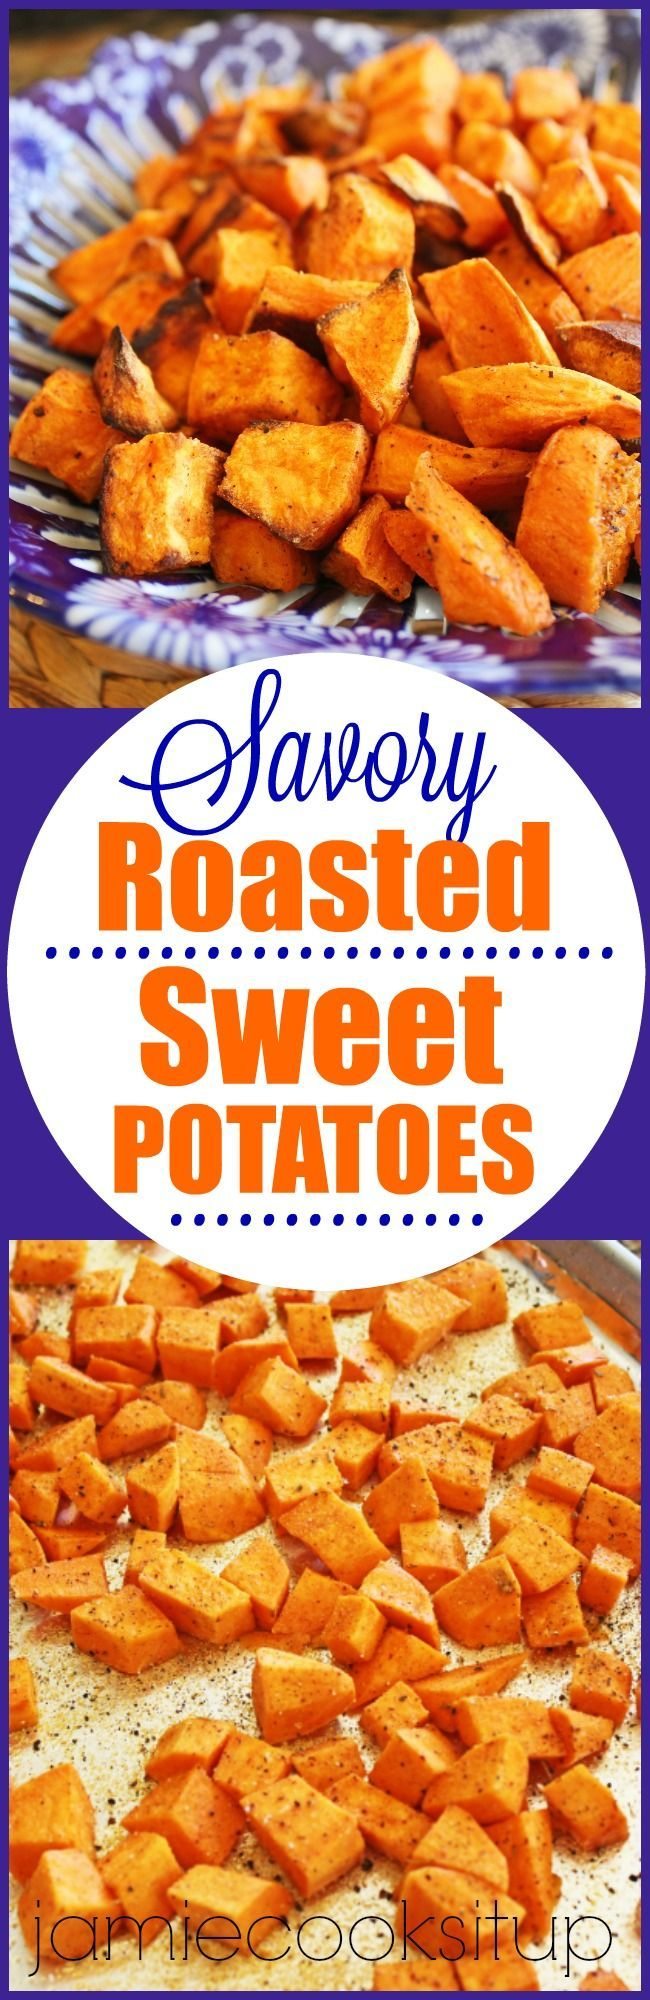 Savory Roasted Sweet Potatoes from Jamie Cooks It Up